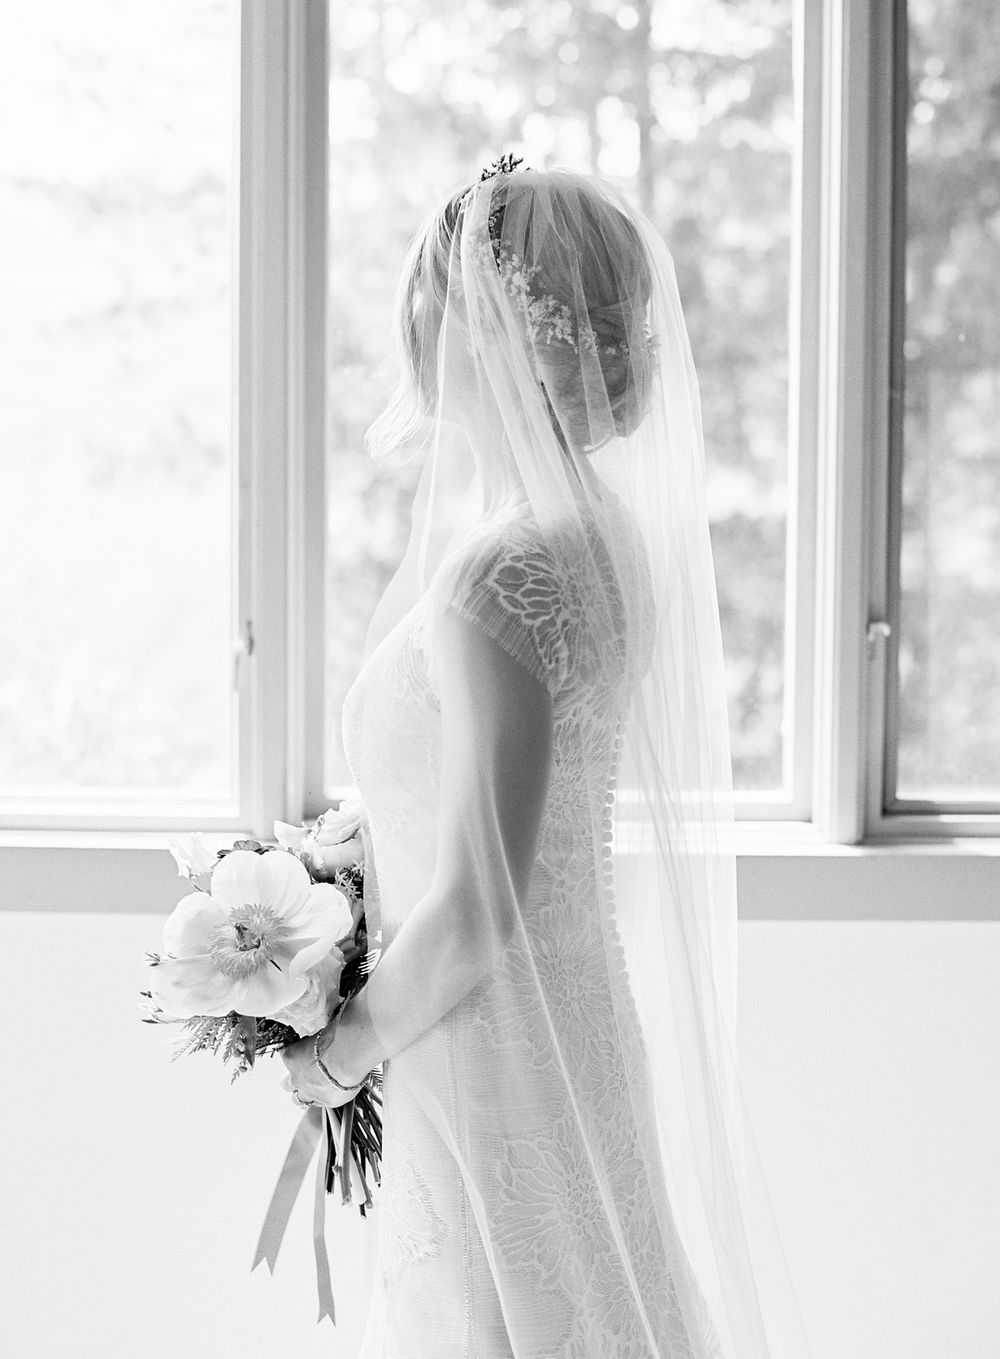 Bride posing in window light holding a bouquet